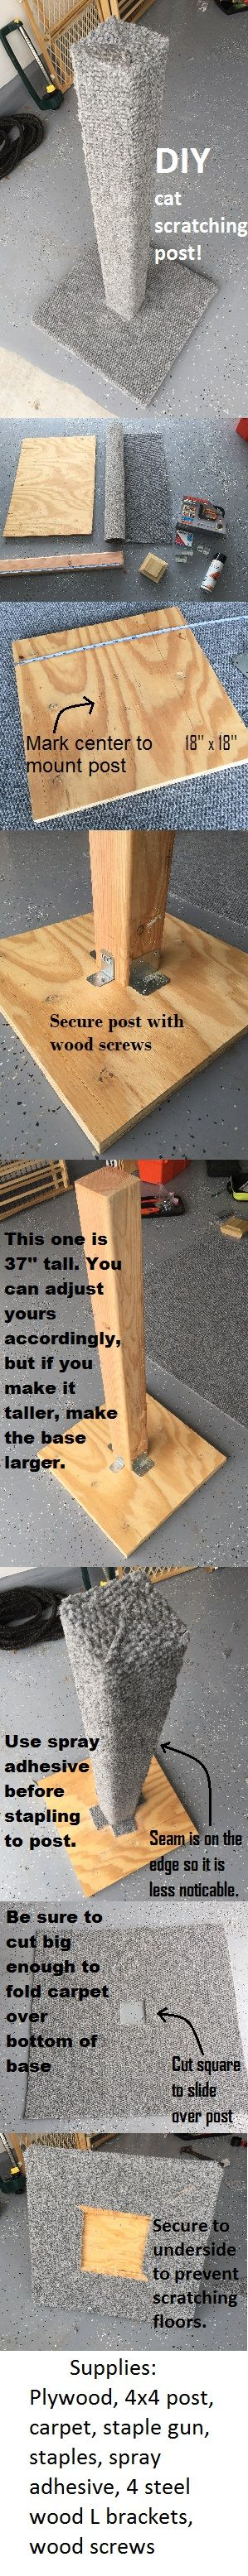 ♥ DIY Cat Stuff ♥  DIY cat scratching post! I decided to make this scratching post because it is impossible to find one that is actually tall enough to make my cat want to scratch it. I hope the pictures are enough detail for you to get the job done. Feel free to ask if you have any questions!